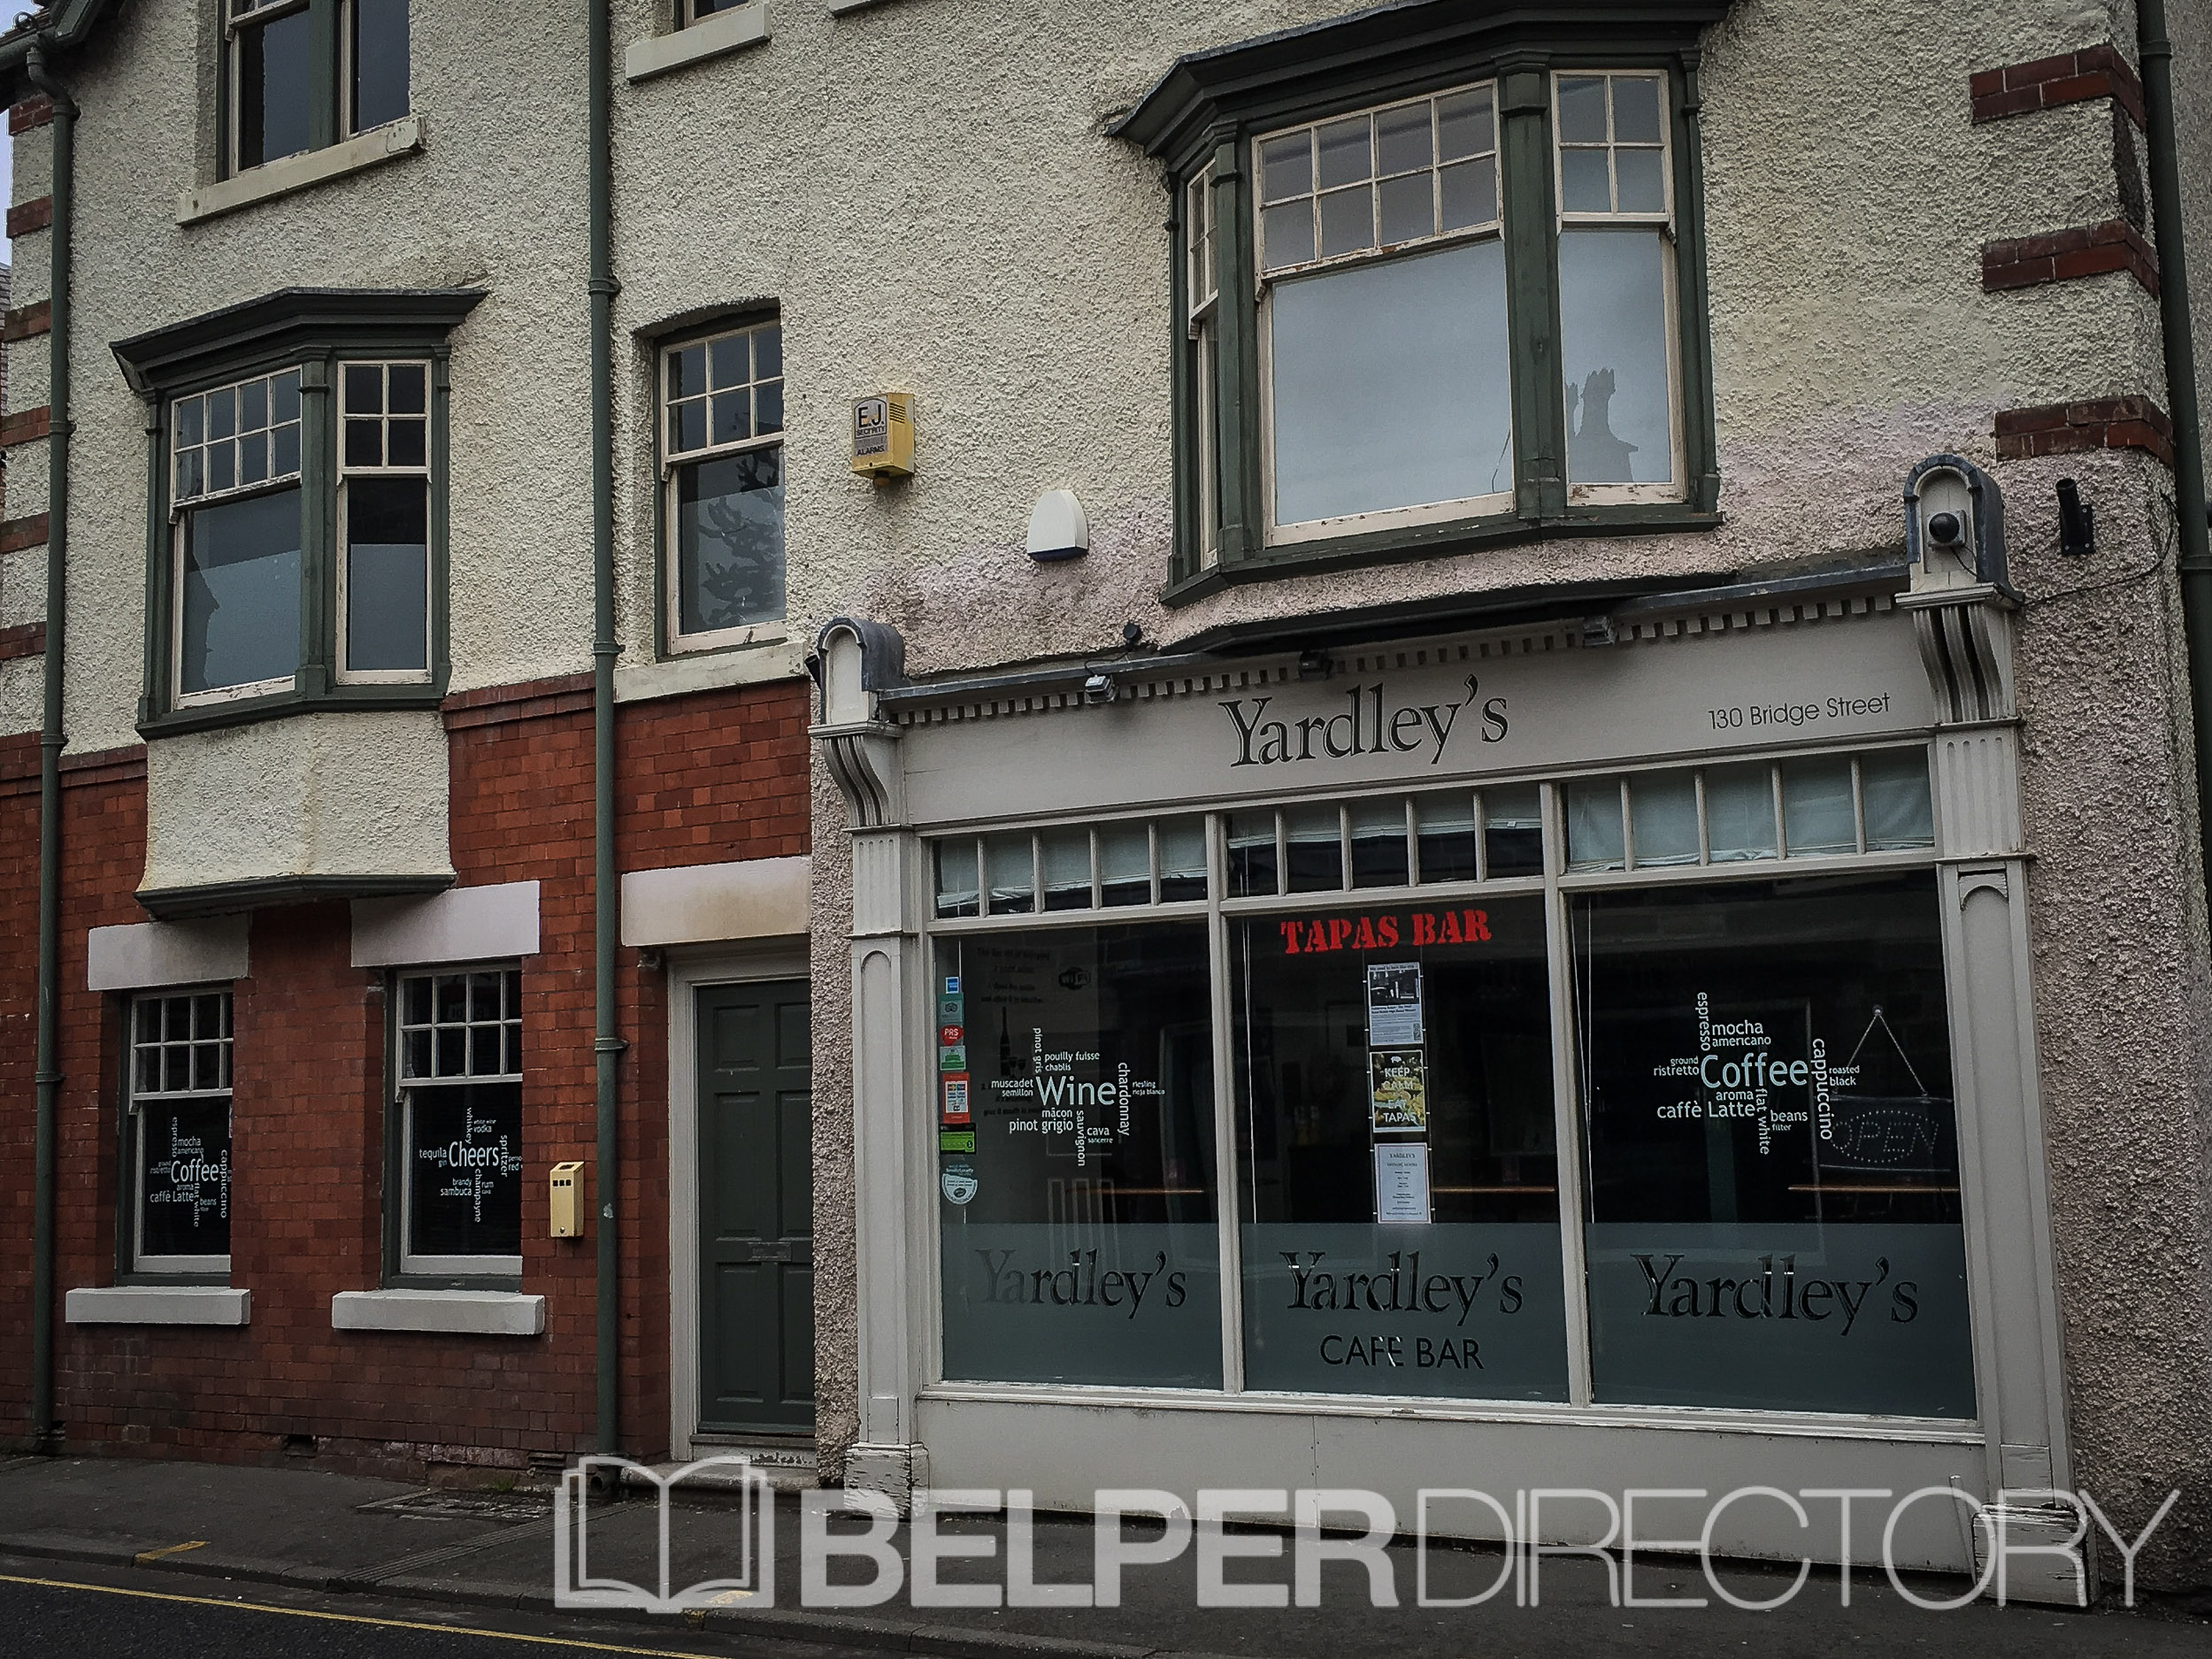 Belper Directory- Yardleys Bar.jpg